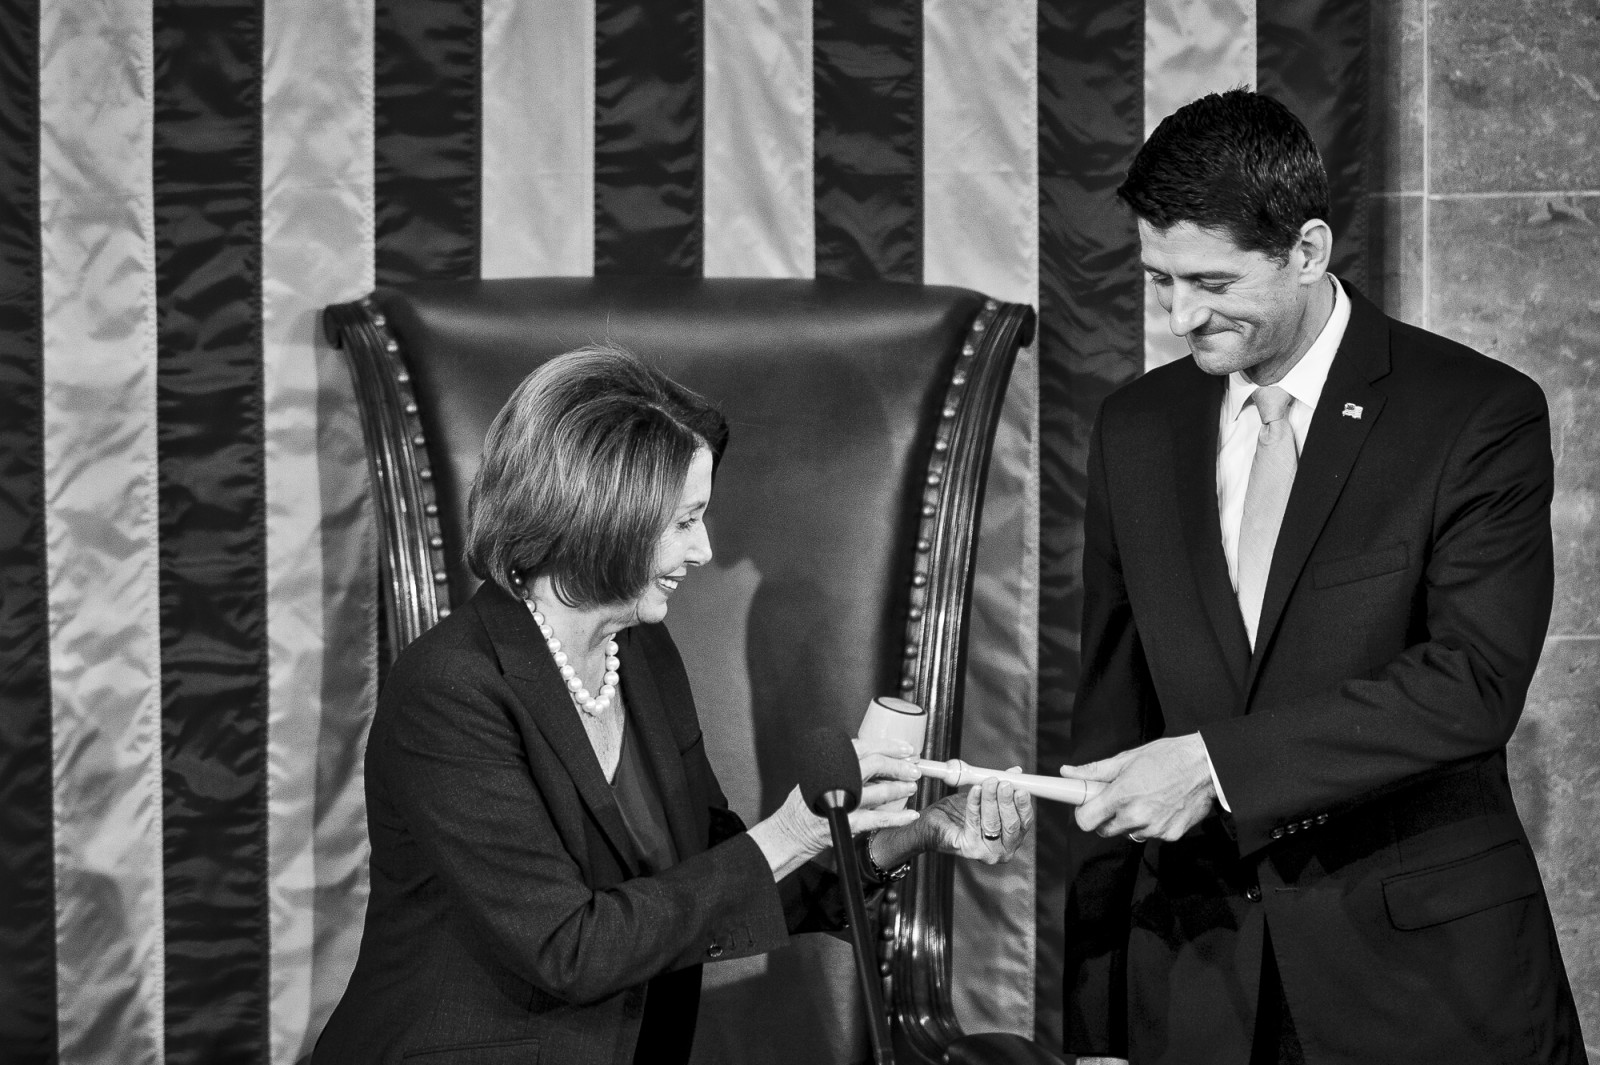 Democratic Minority Leader Nancy Pelosi passes the gavel to the 62nd Speaker of the House, Paul Ryan (R-WI) on October 29, 2015 in Washington, D.C. Earlier the outgoing Speaker, Rep. John Boehner (R-OH), gave his farewell address to Congress. He is retiring on October 30, 2015. Photo by Pete Marovich/UPI